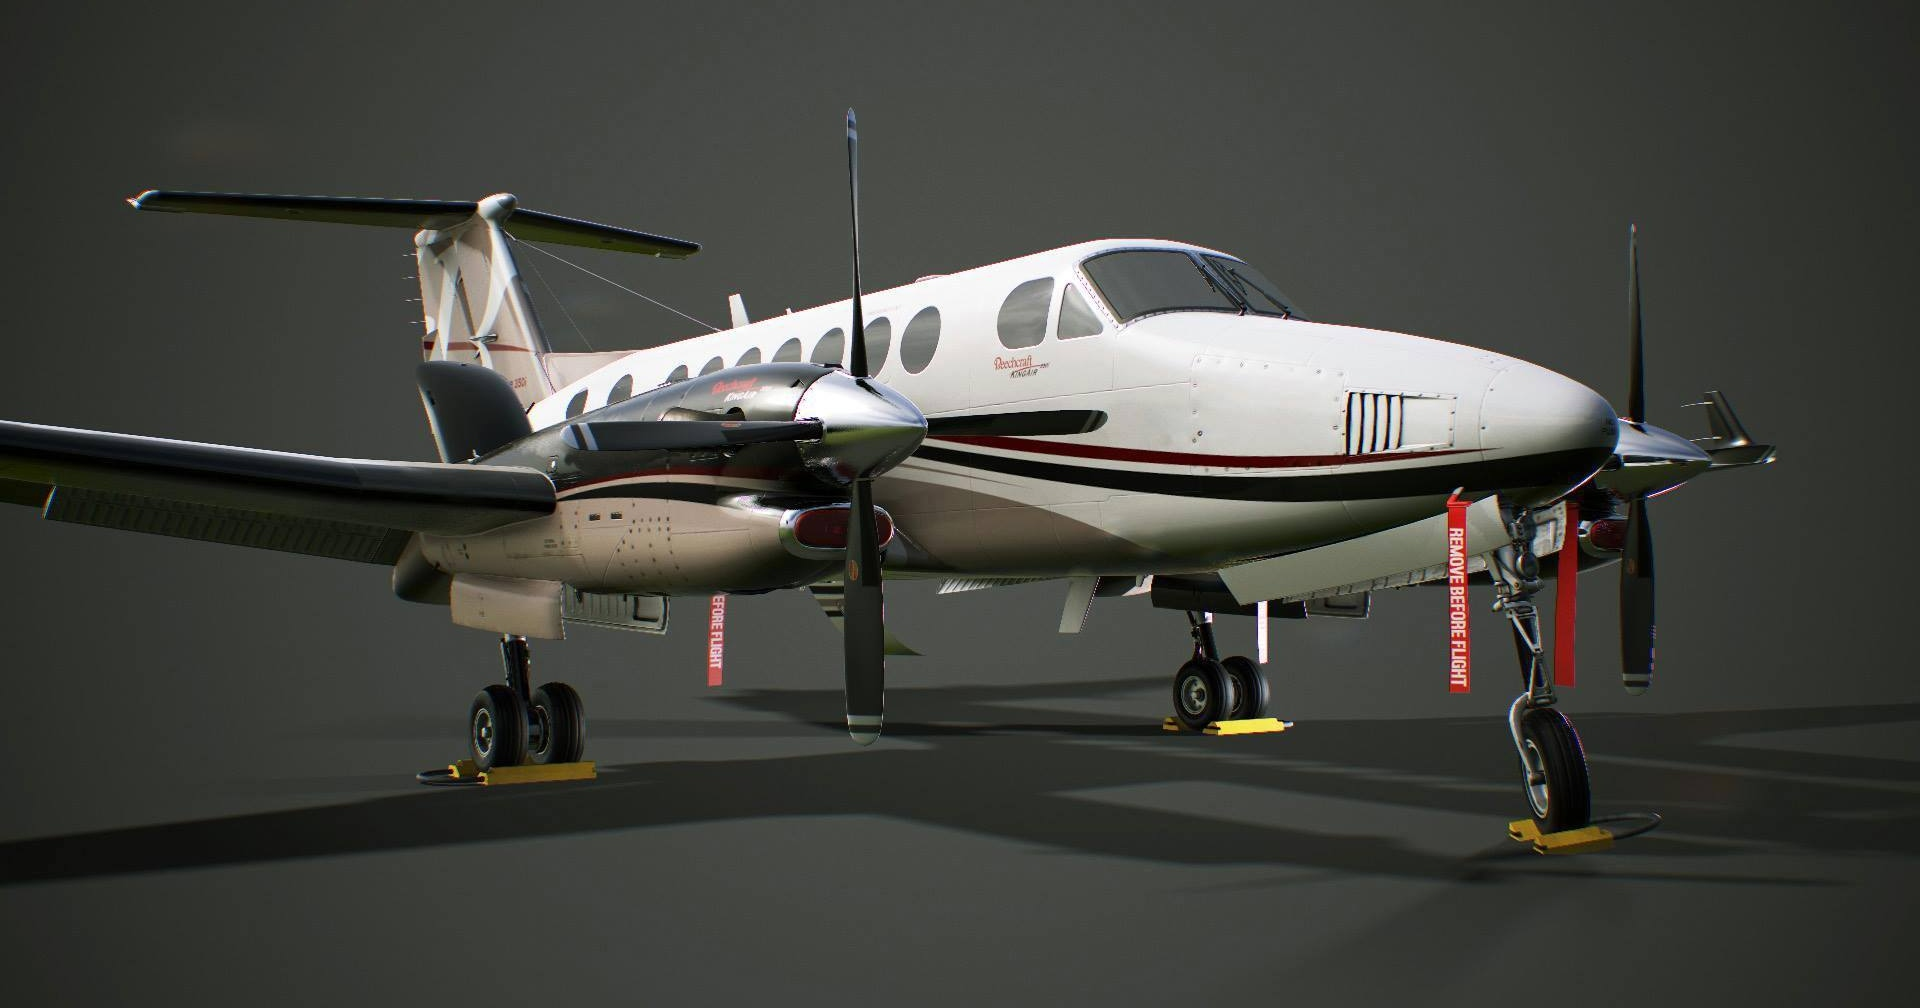 PBR preview of the upcoming Milviz King Air 350i